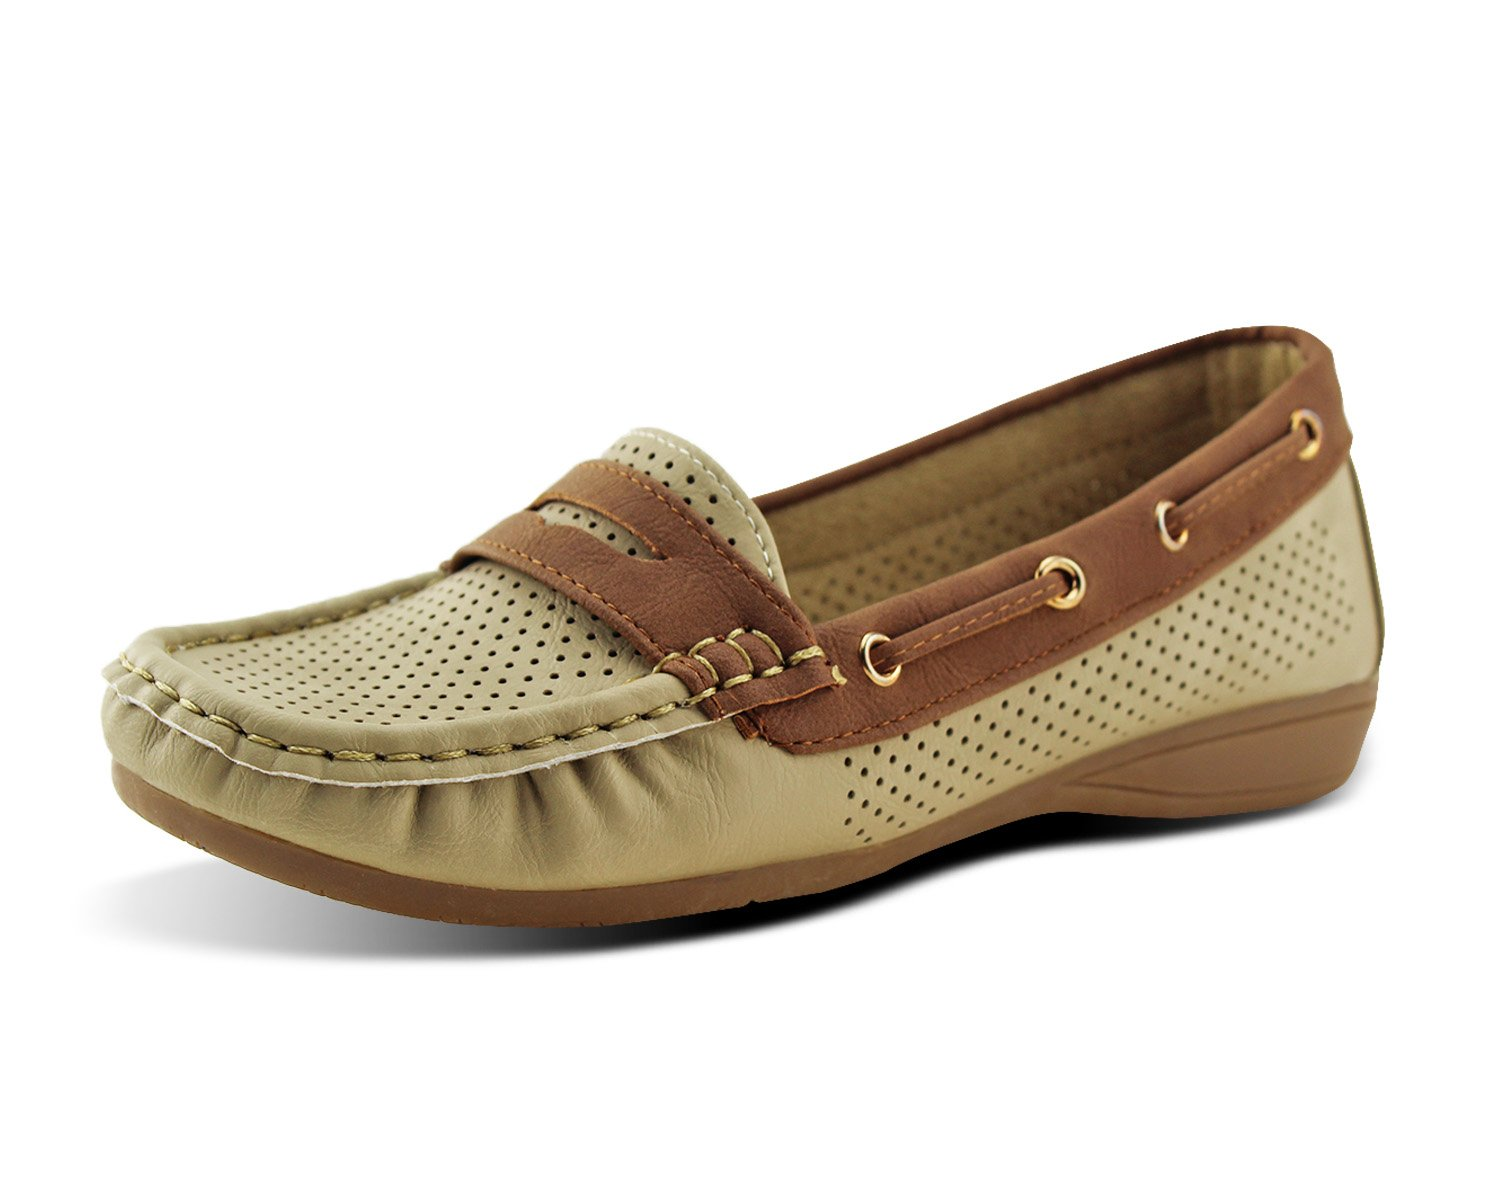 Jabasic Lady Comfort Slip-on Loafers Hollow Driving Flat Shoes(7.5,Beige)